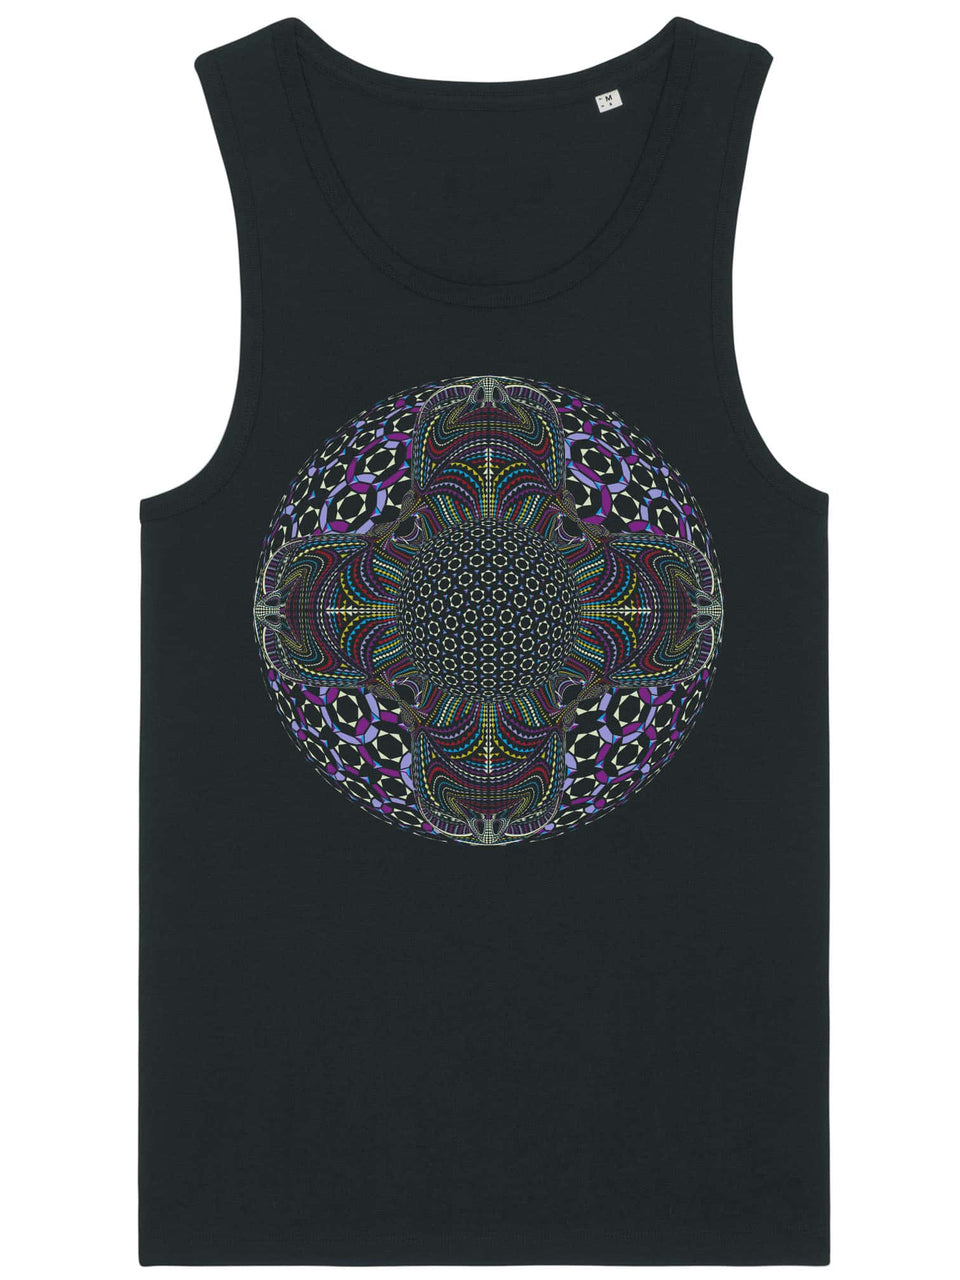 DMT HD Mandala Made To Order Men Tank Top - Black